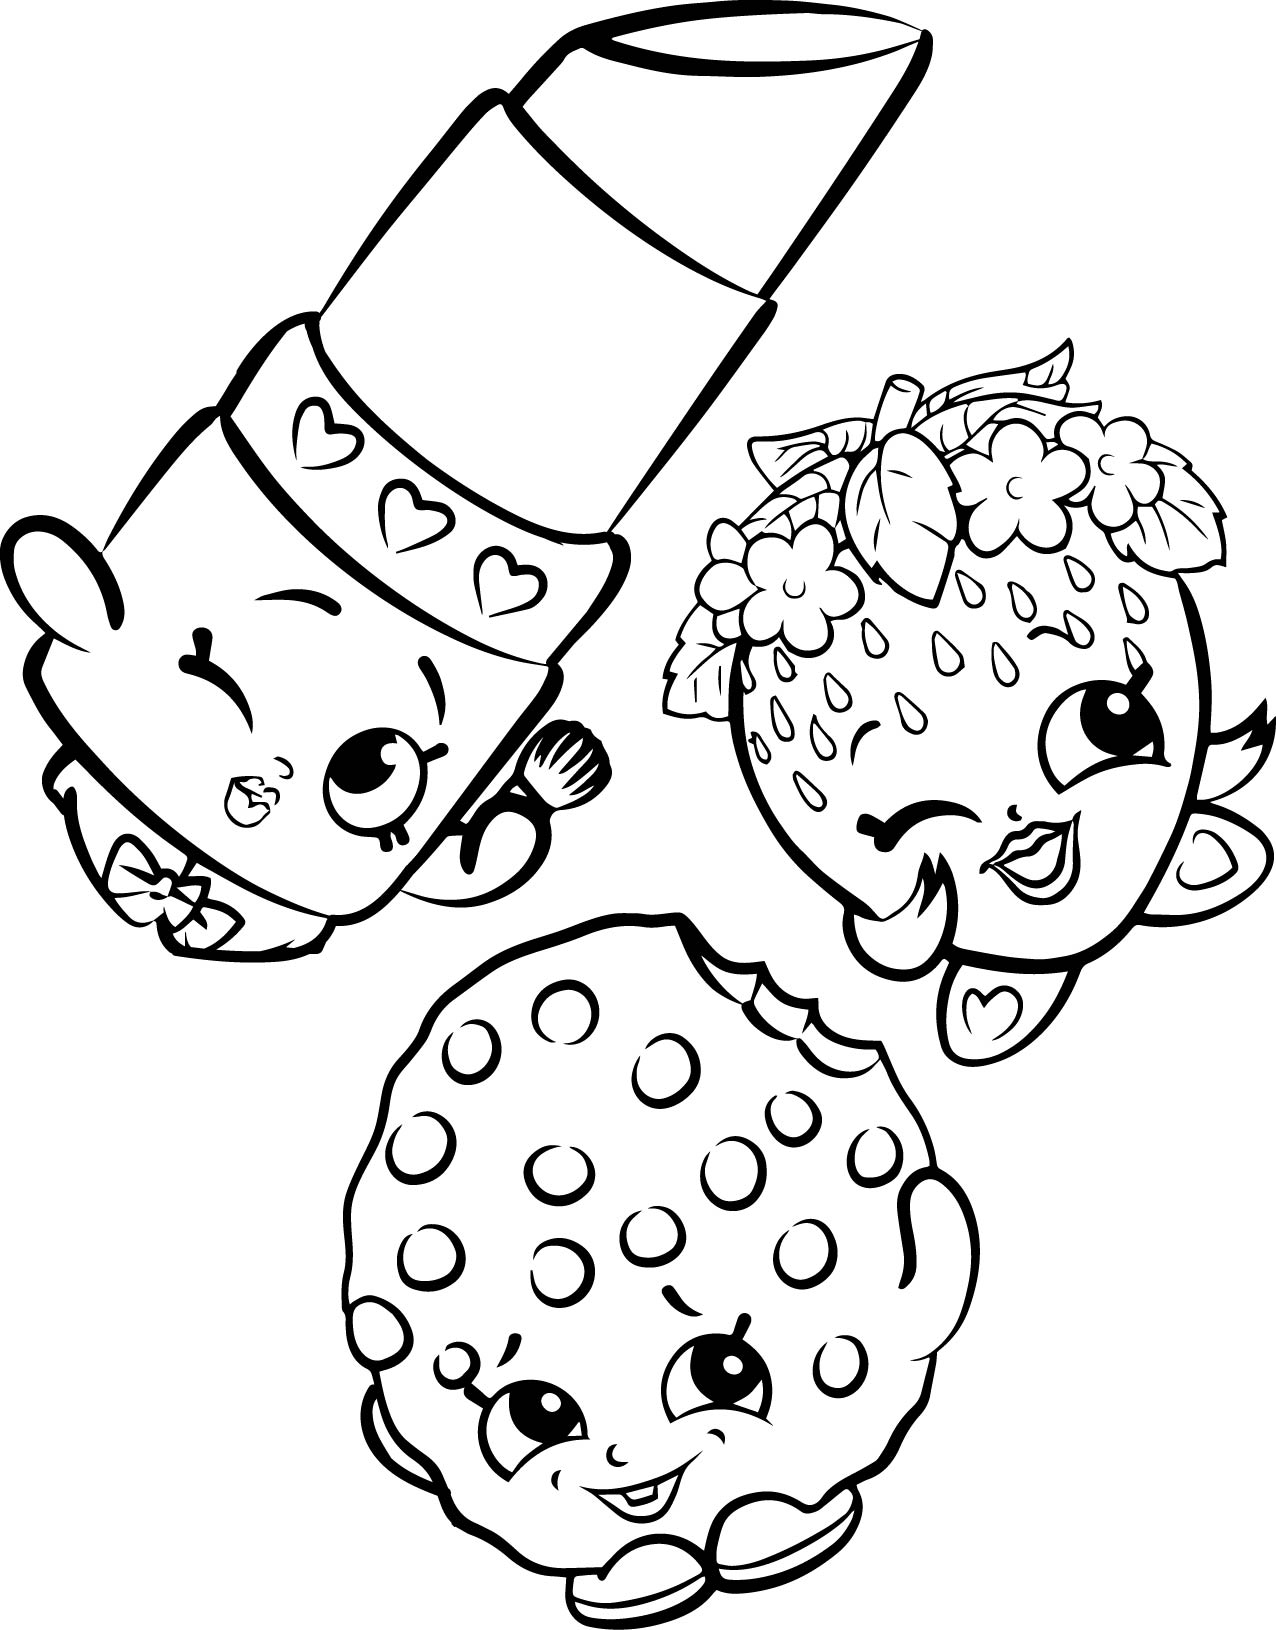 graphic relating to Printable Shopkins Coloring Pages named Shopkins Coloring Webpages - Suitable Coloring Web pages For Children